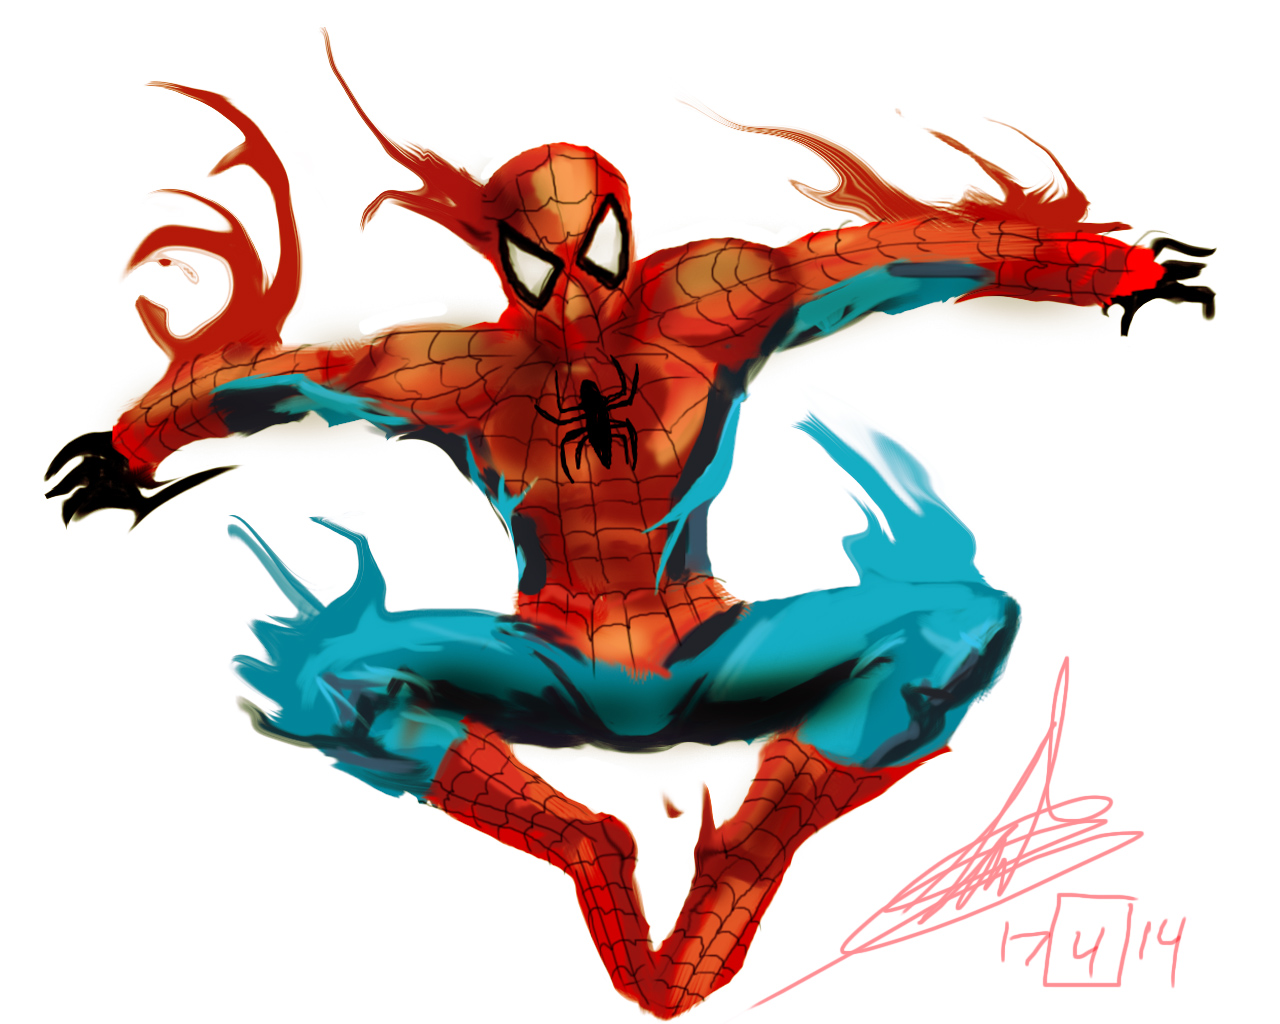 here comes the spiderman!